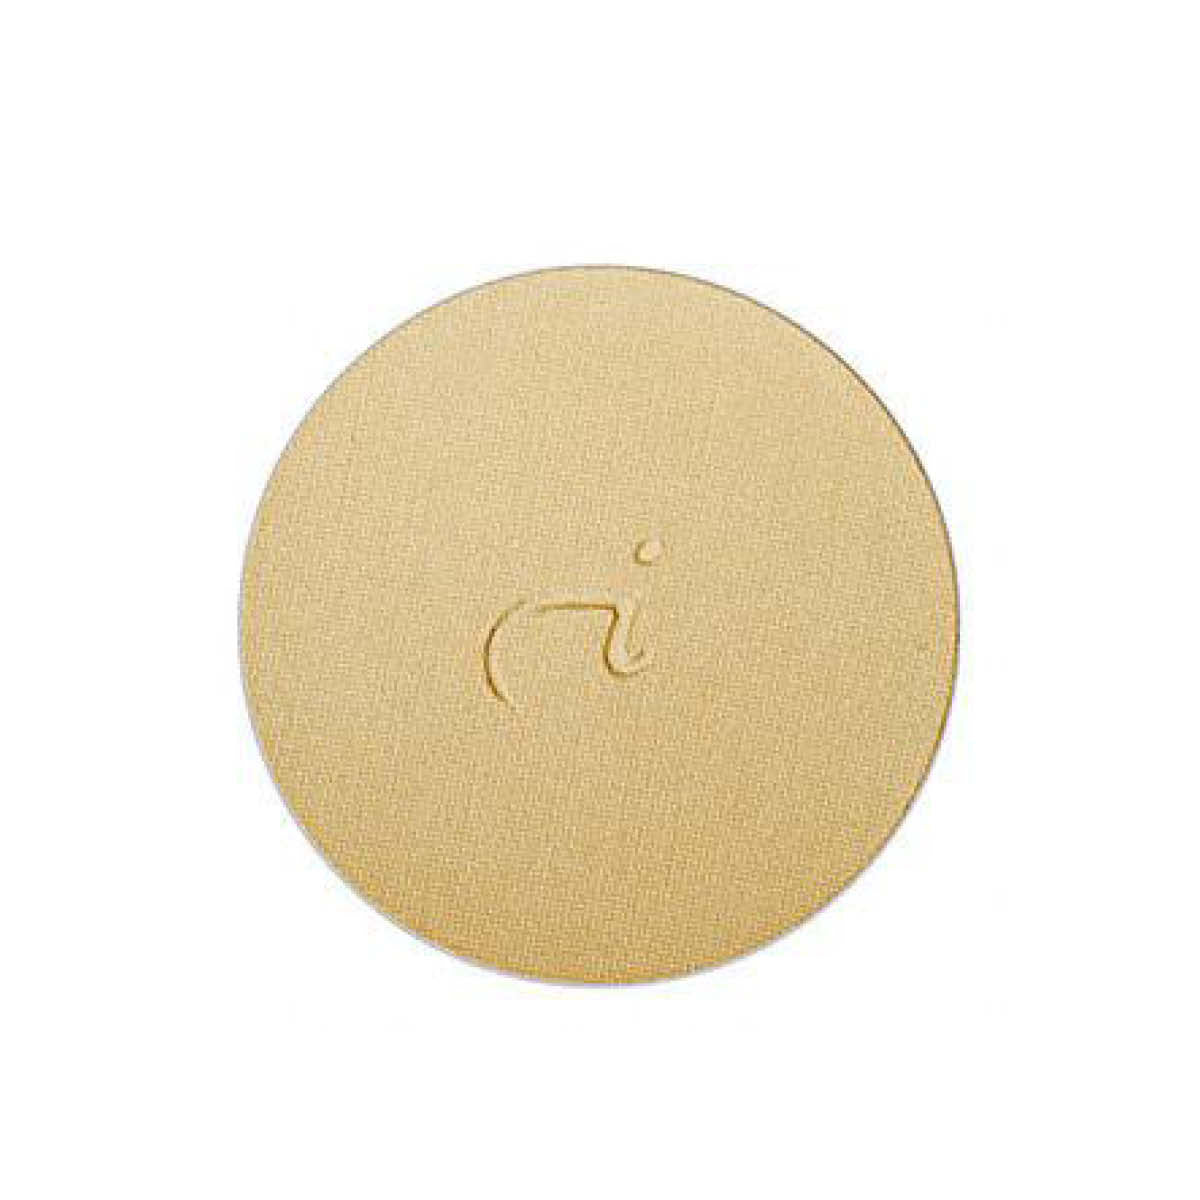 Jane Iredale Pure Pressed Powder Refill Golden Glow